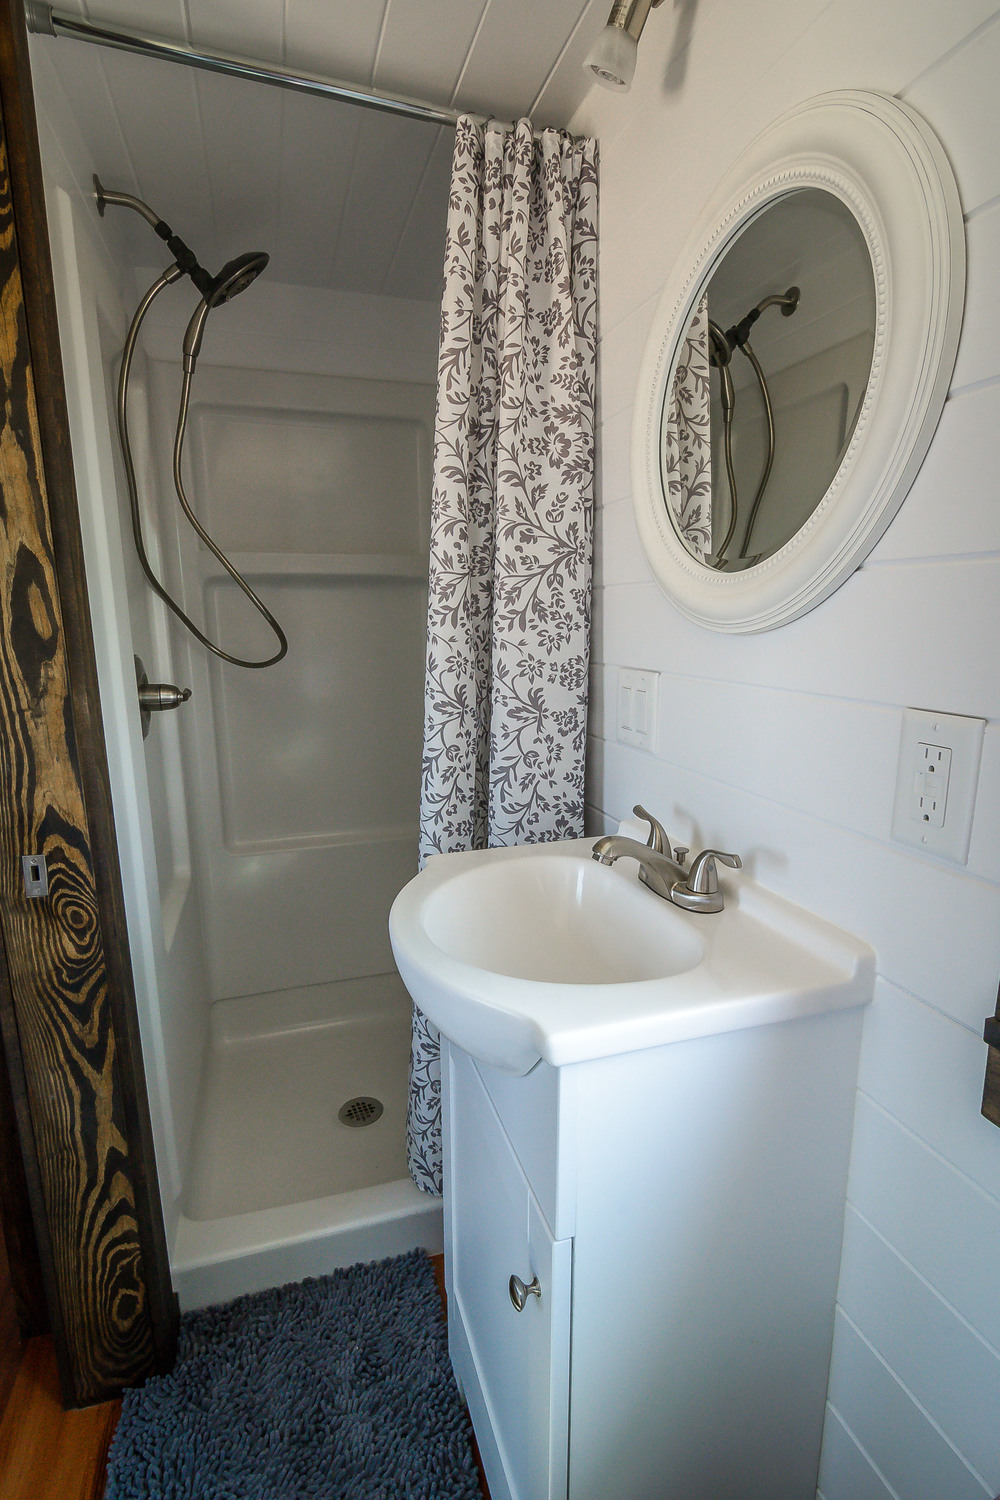 The Triton By Wind River Tiny Homes Bathroom With Vanity And Custom Built In Shelving